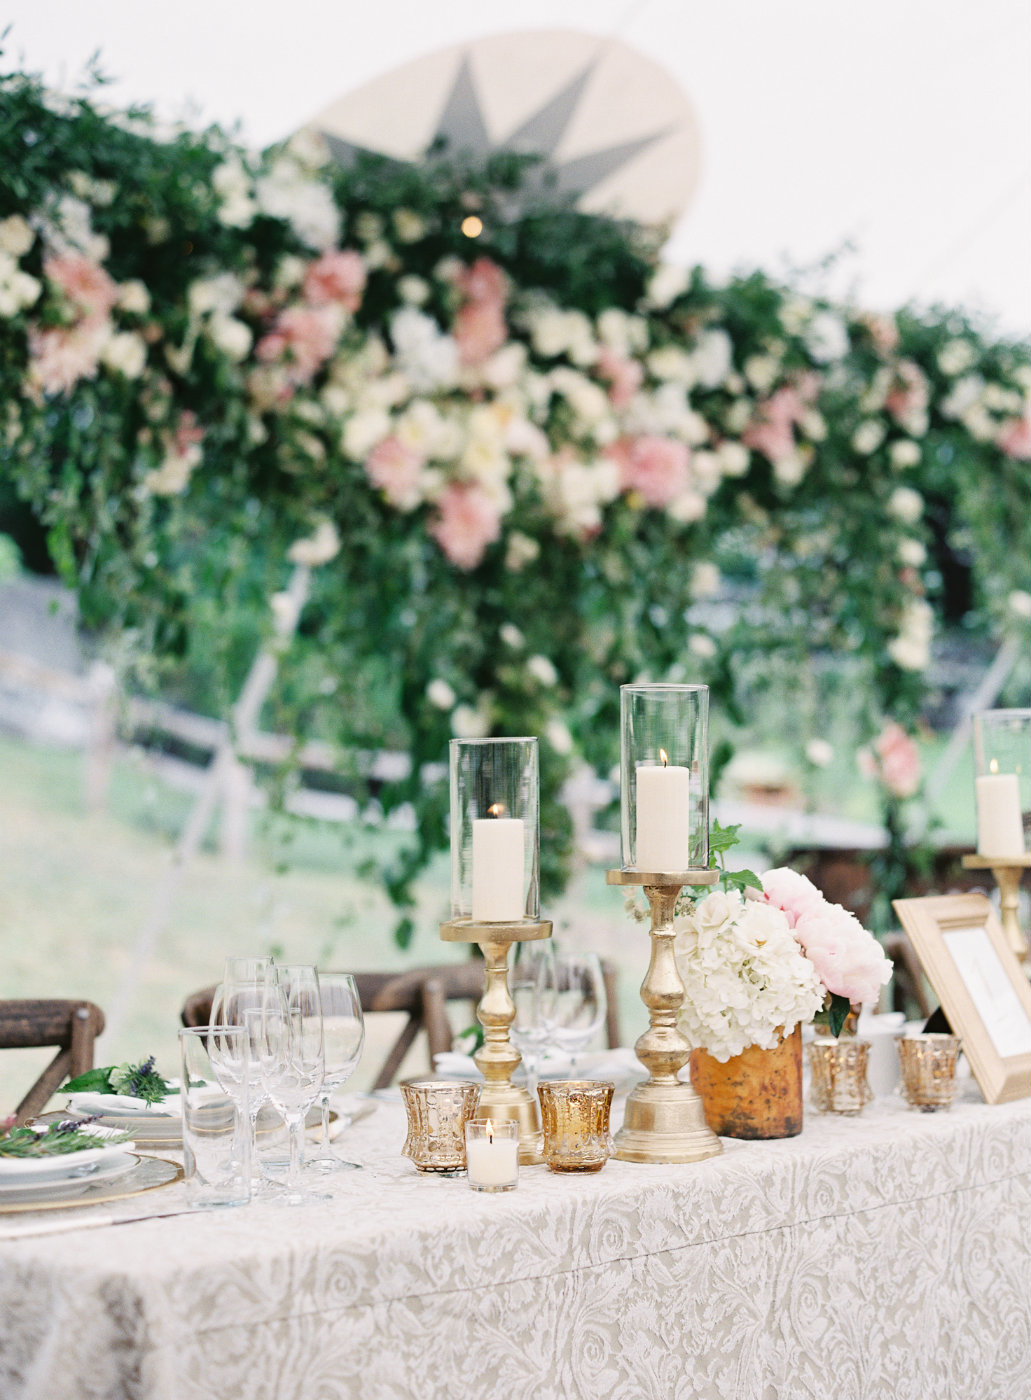 Gorgeous head table with gold accents and blush flowers designed by Flora Nova Design.